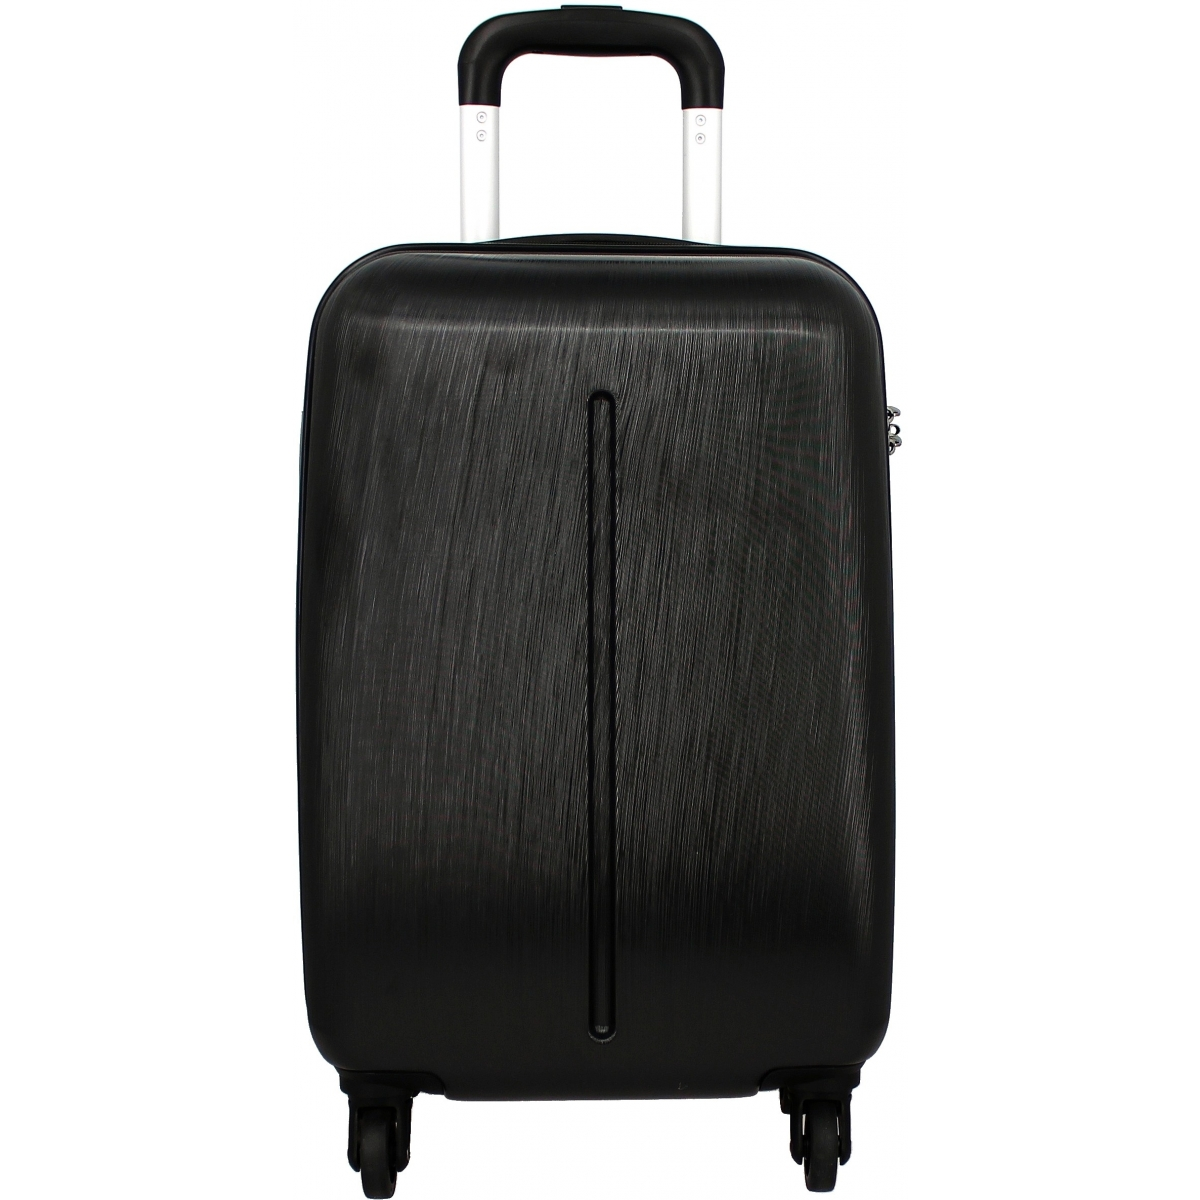 valise cabine ryanair david jones 54 5 cm tsa ba10141p. Black Bedroom Furniture Sets. Home Design Ideas